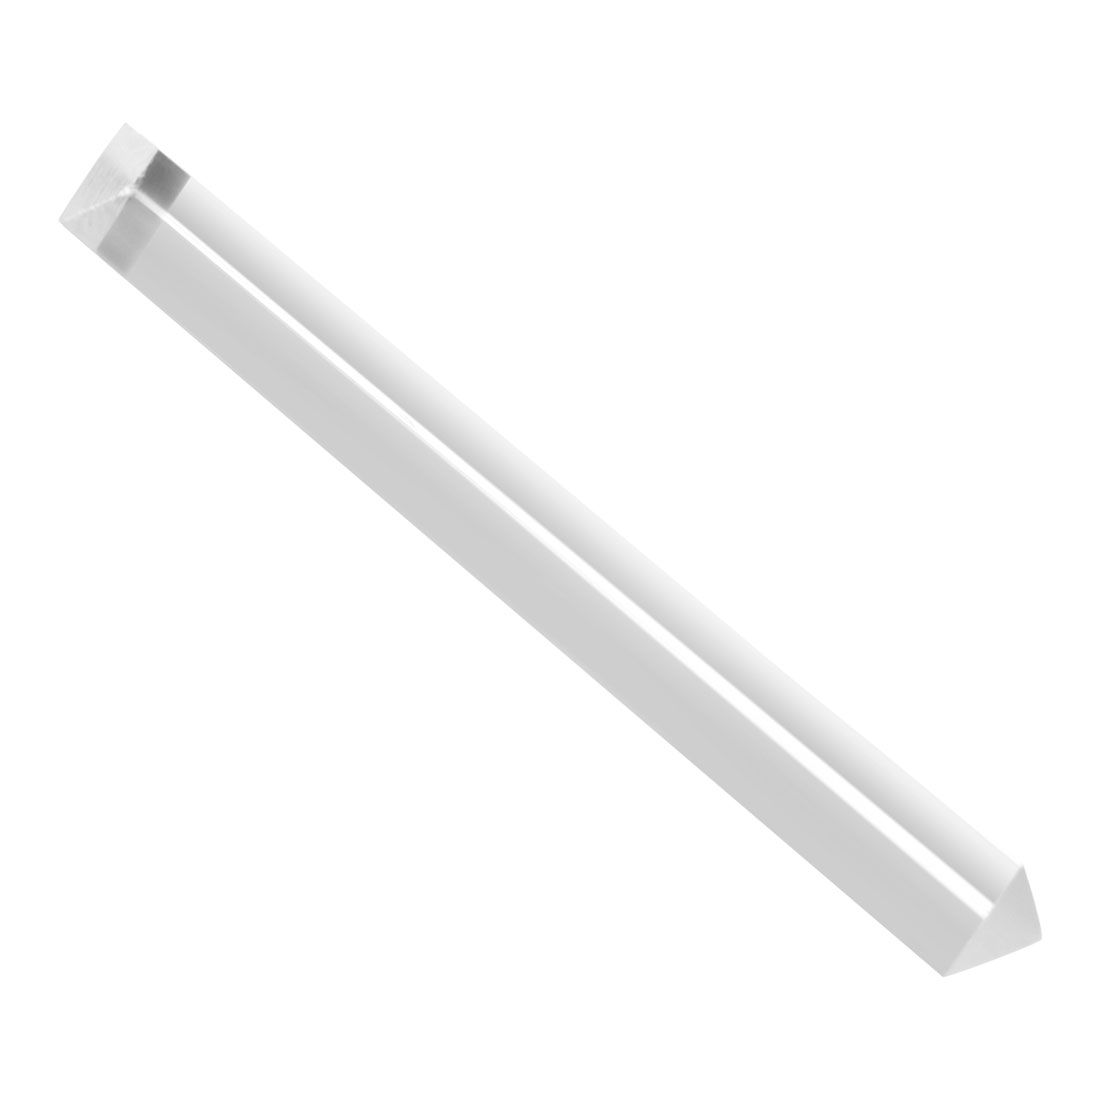 Clear Solid Acrylic Triangle Rod PMMA Extruded Bar 25mmx250mm